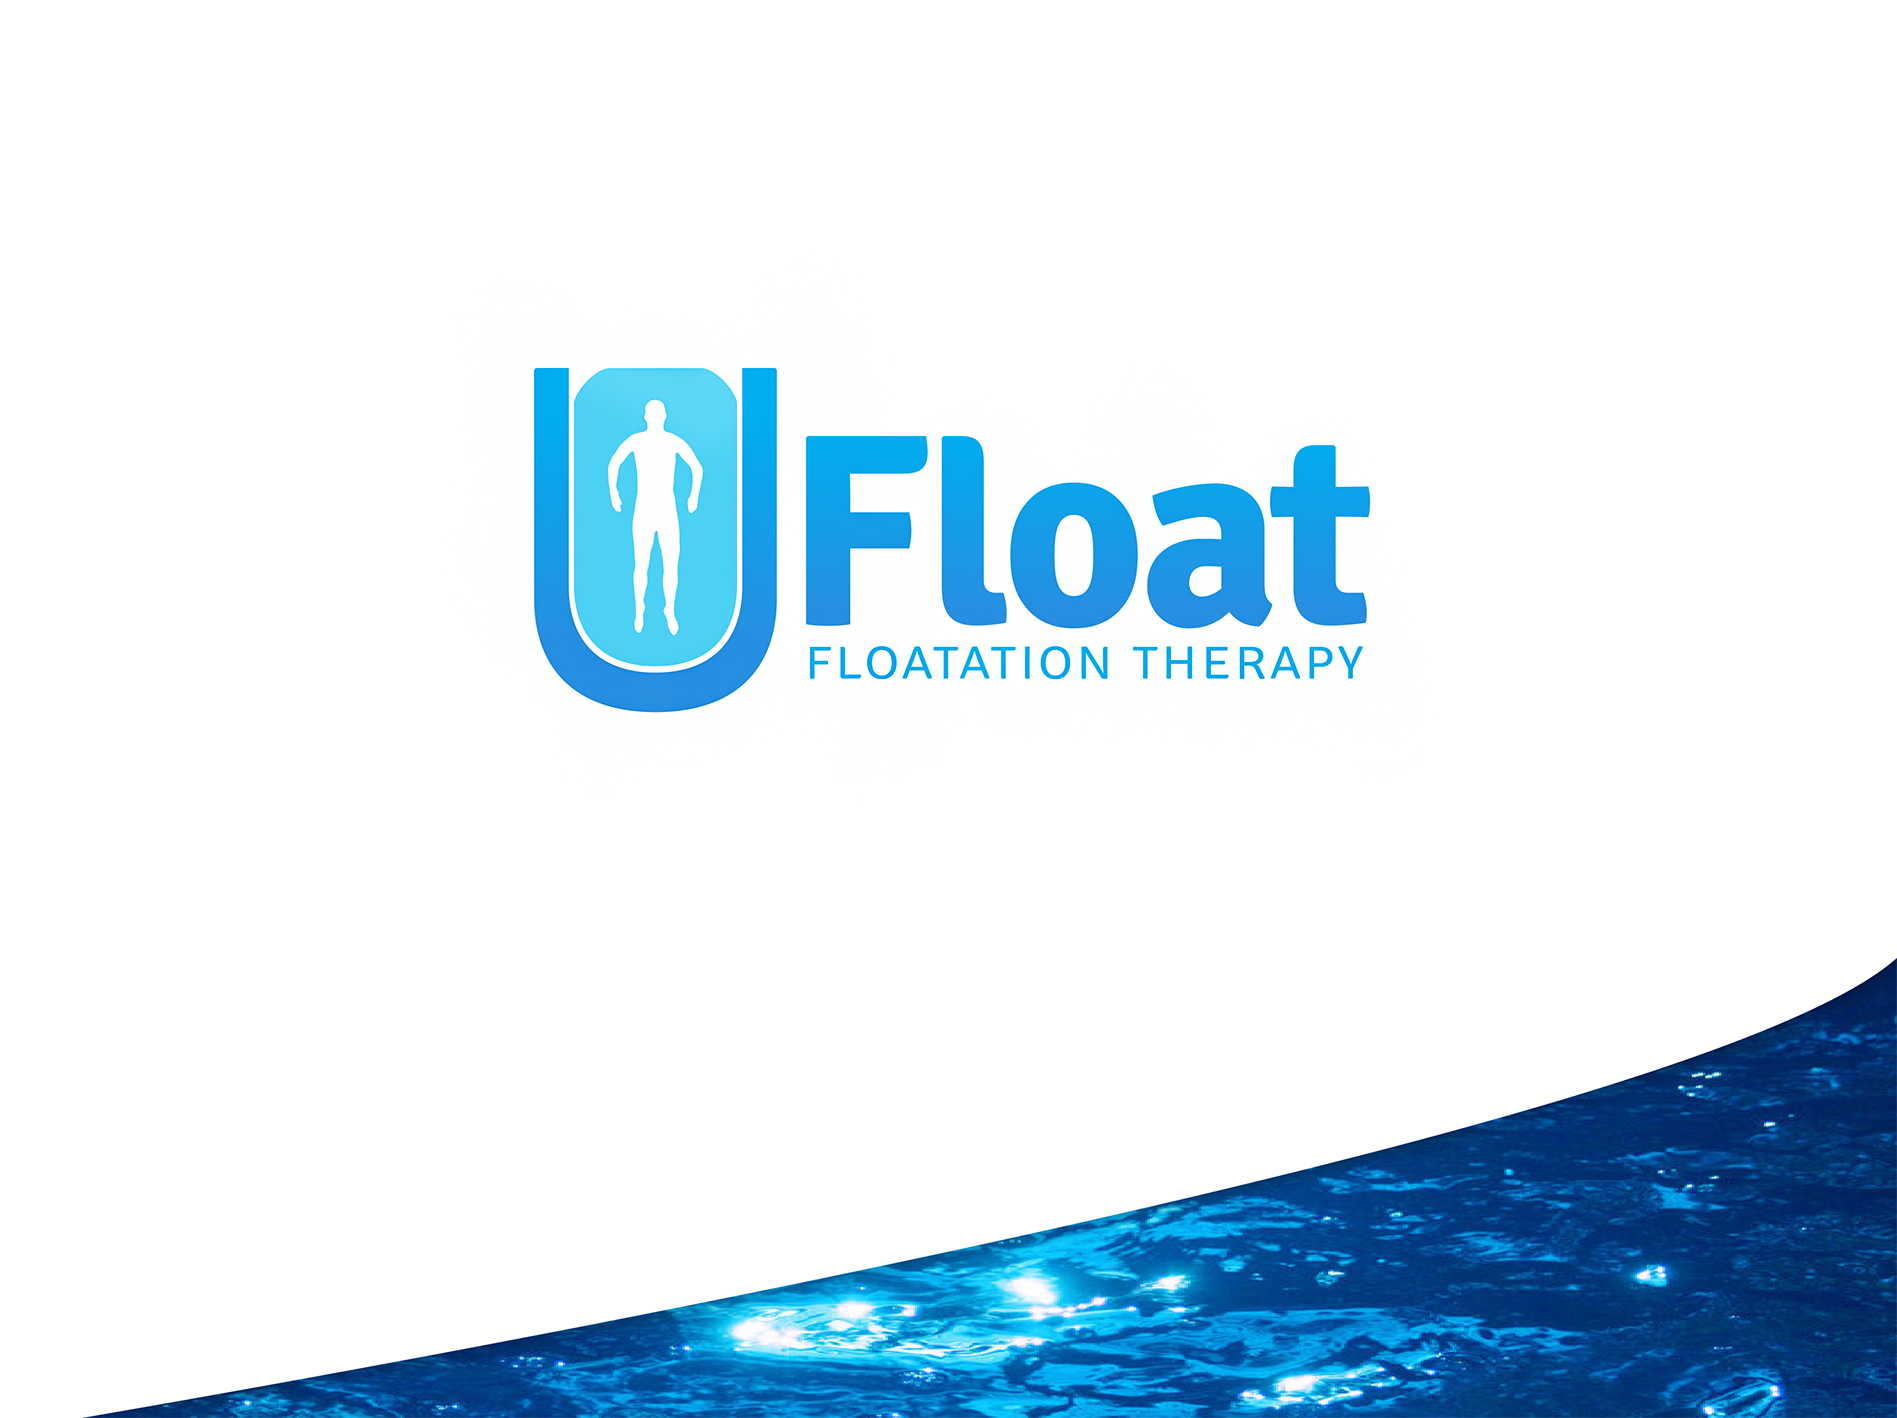 Help us to create a simple and universally recognized design for the float industry.